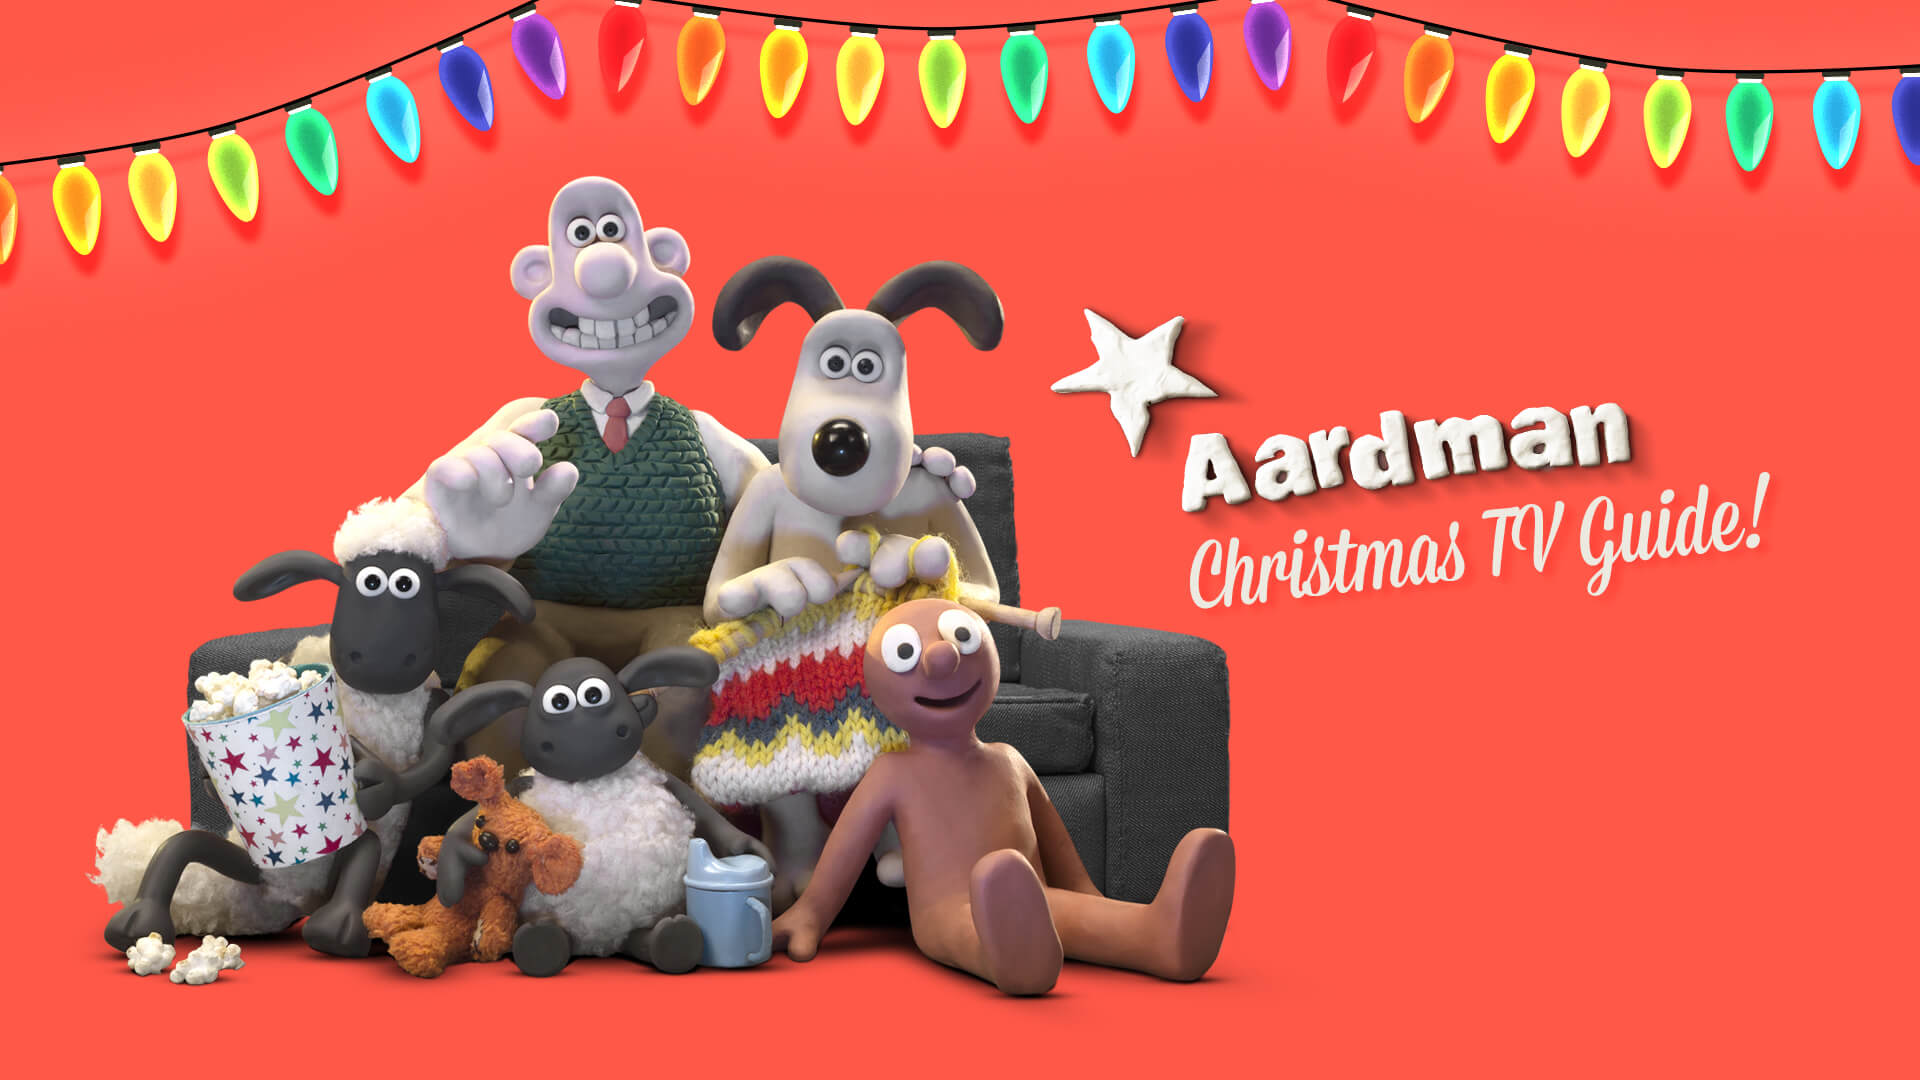 Aardman Christmas TV guide 2020